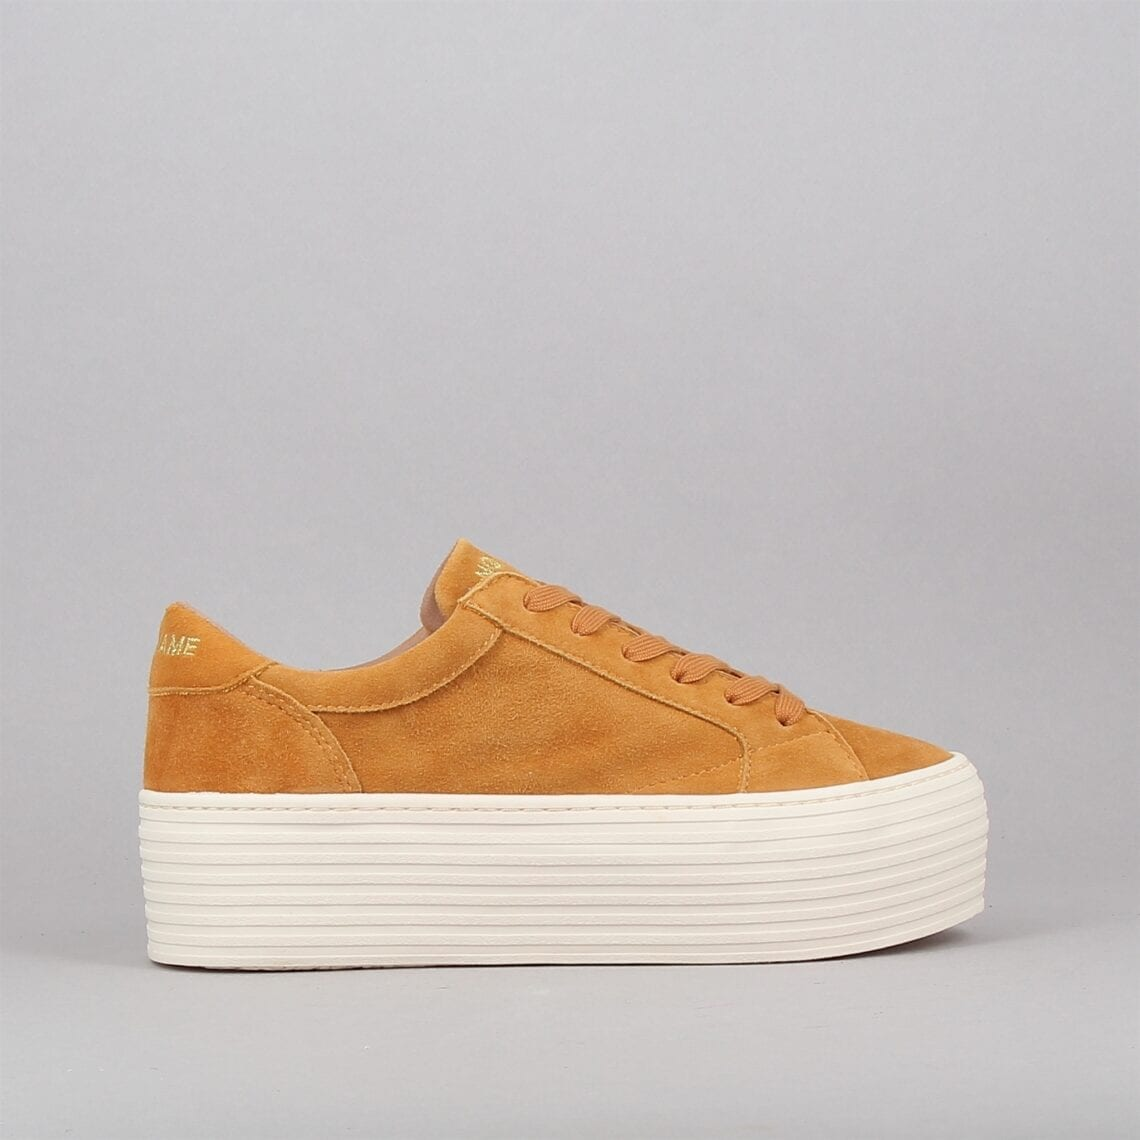 spice-sneaker-goat-orange-181403650-0.jpg